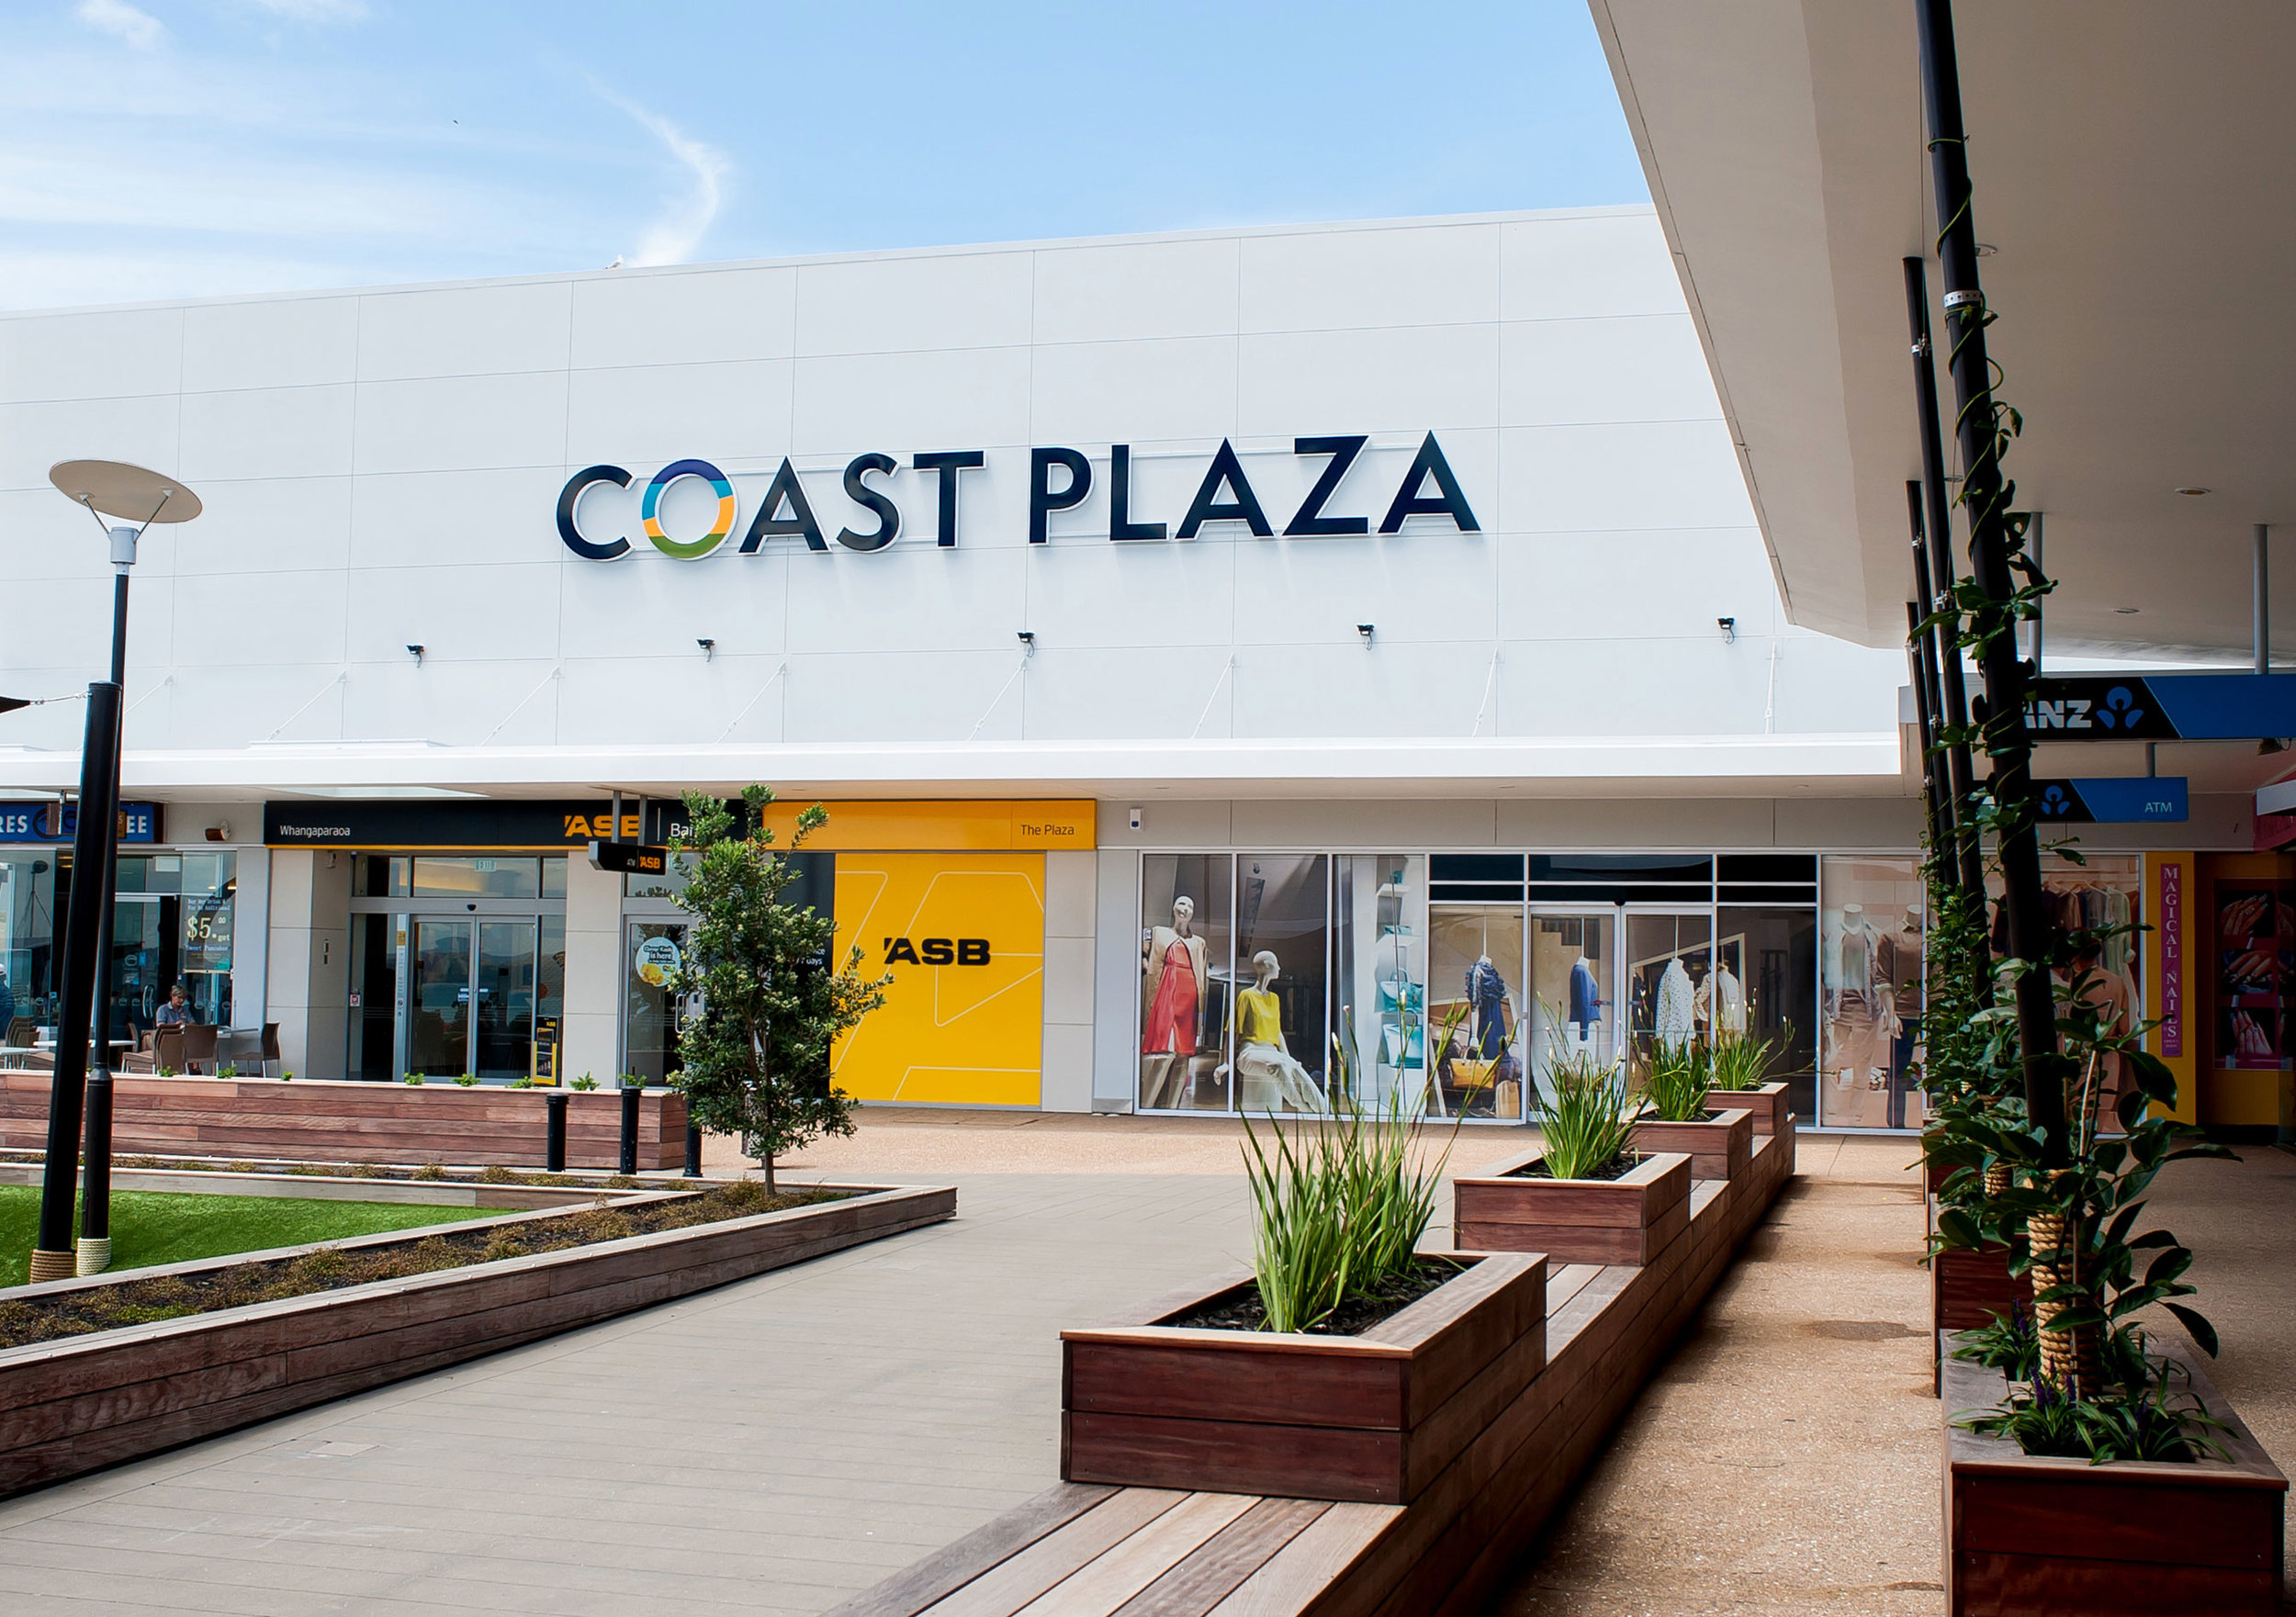 Coast Plaza courtyard signage